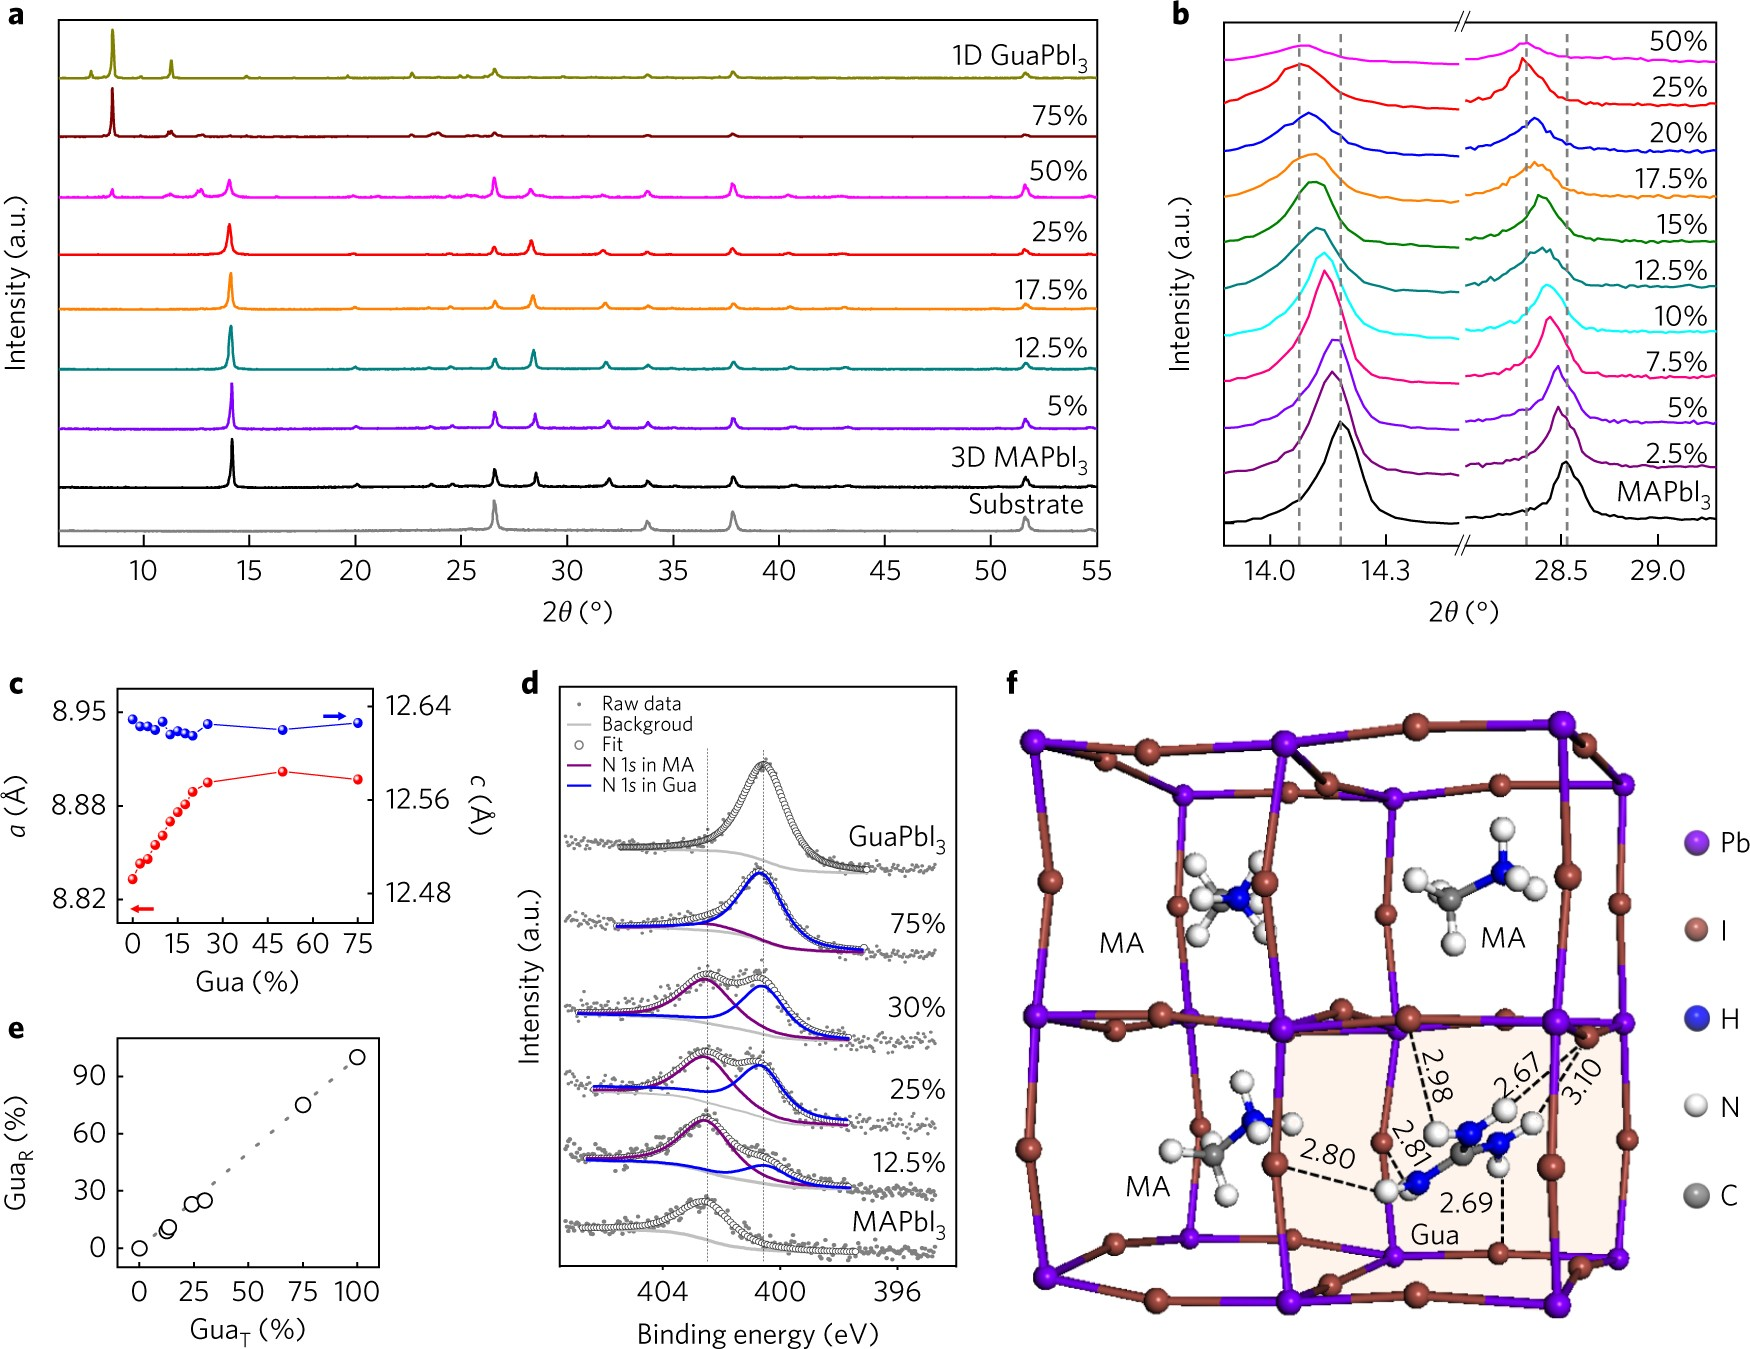 Large Guanidinium Cation Mixed With Methylammonium In Lead Iodide Solar Cell And Motor Circuit Electron Flow Perovskites For 19 Efficient Cells Nature Energy